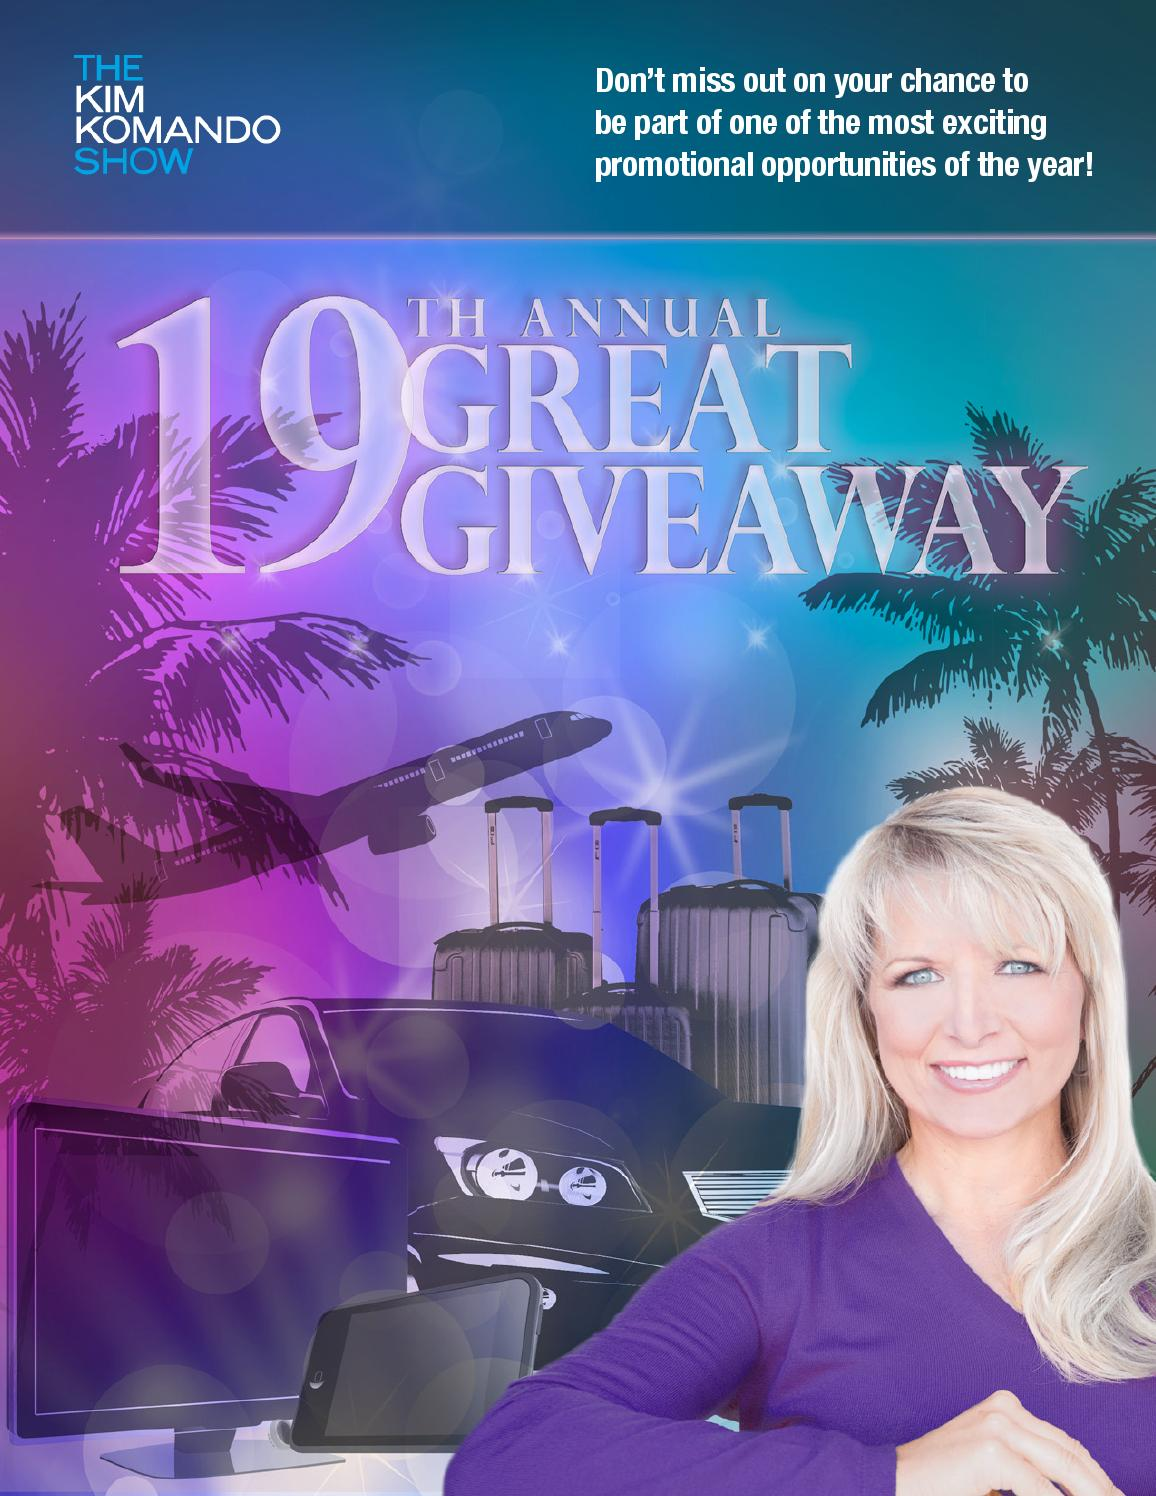 kim komando giveaway kim komando s 19th annual great giveaway by weststar 2879